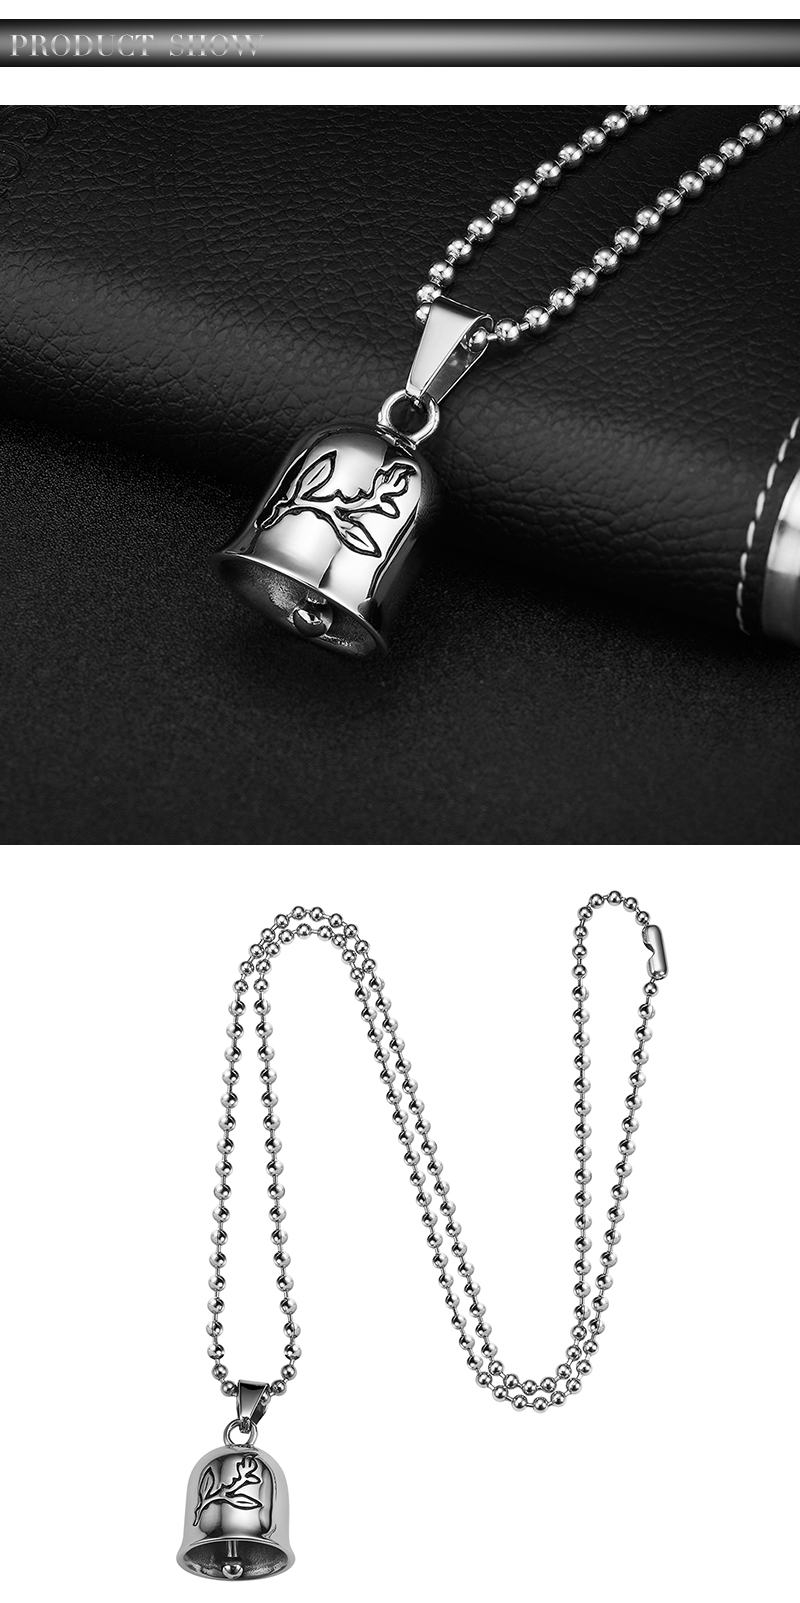 Cool Bell Pendant 316L Stainless Steel Sliver Bell Clock Pendant with Necklace for Biker Men